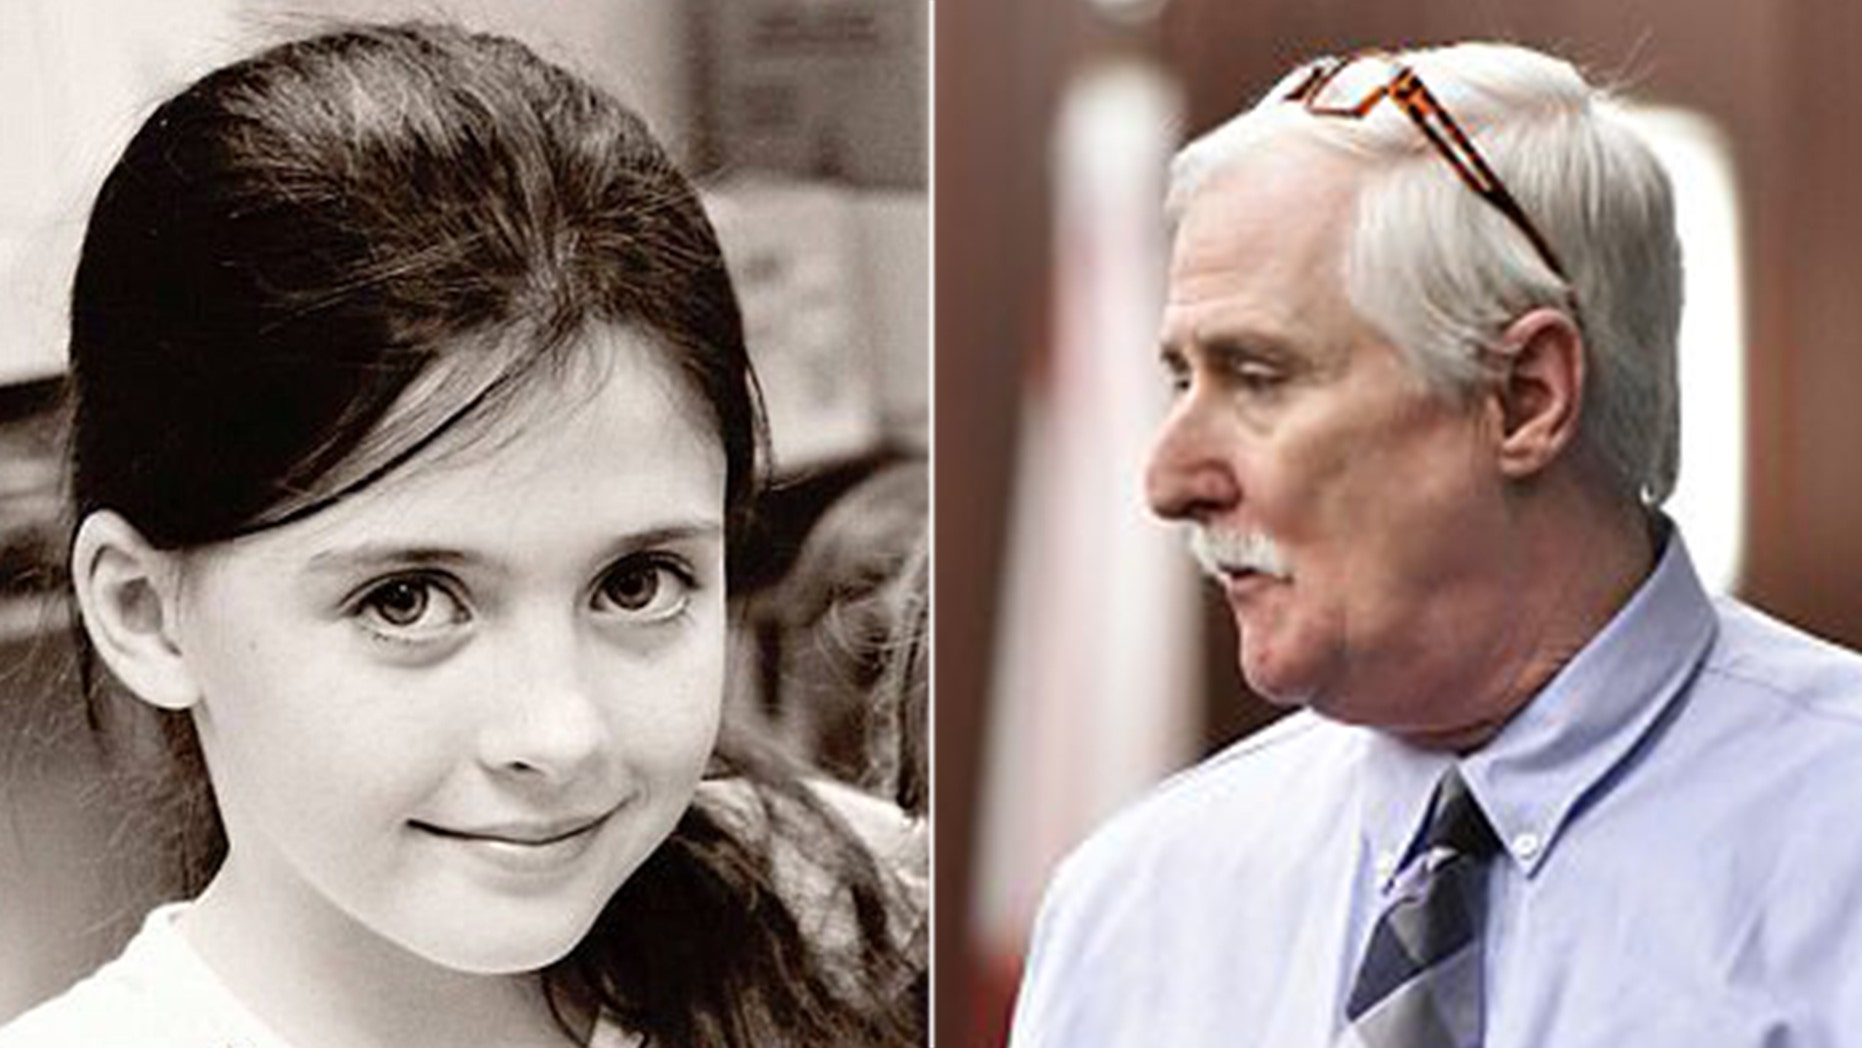 On Wednesday, Feb.14, 2018, it took less than 15 minutes for a jury to convict Donald Smith (right) of abducting, raping and murdering 8-year-old Cherish Perrywinkle in Jacksonville, Fla.